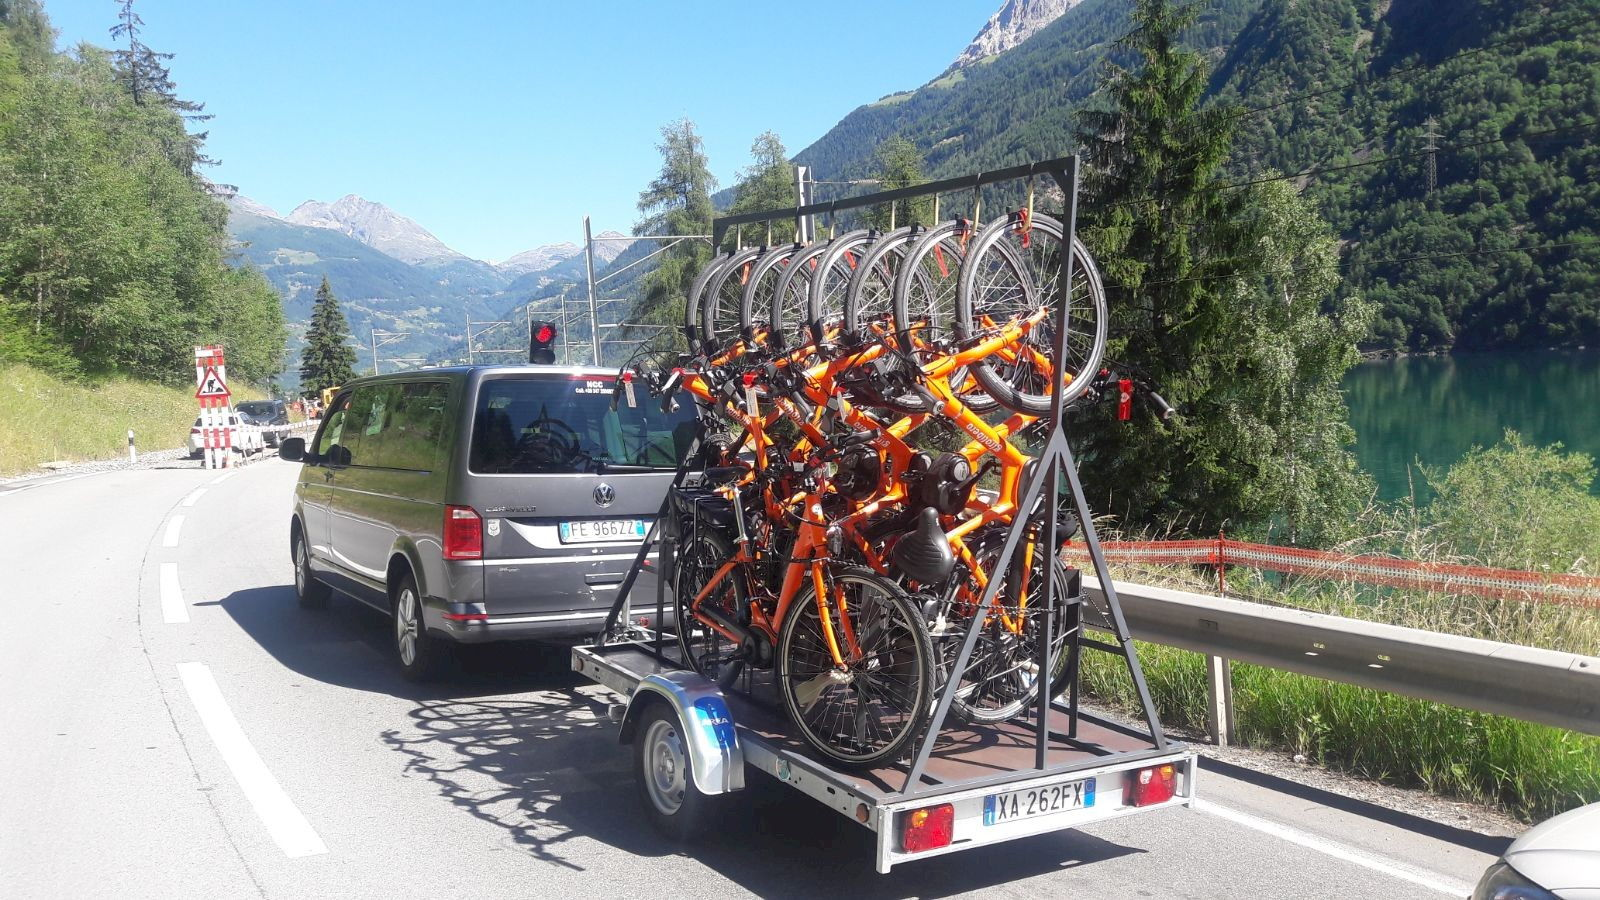 Bike Shuttle in Valtellina